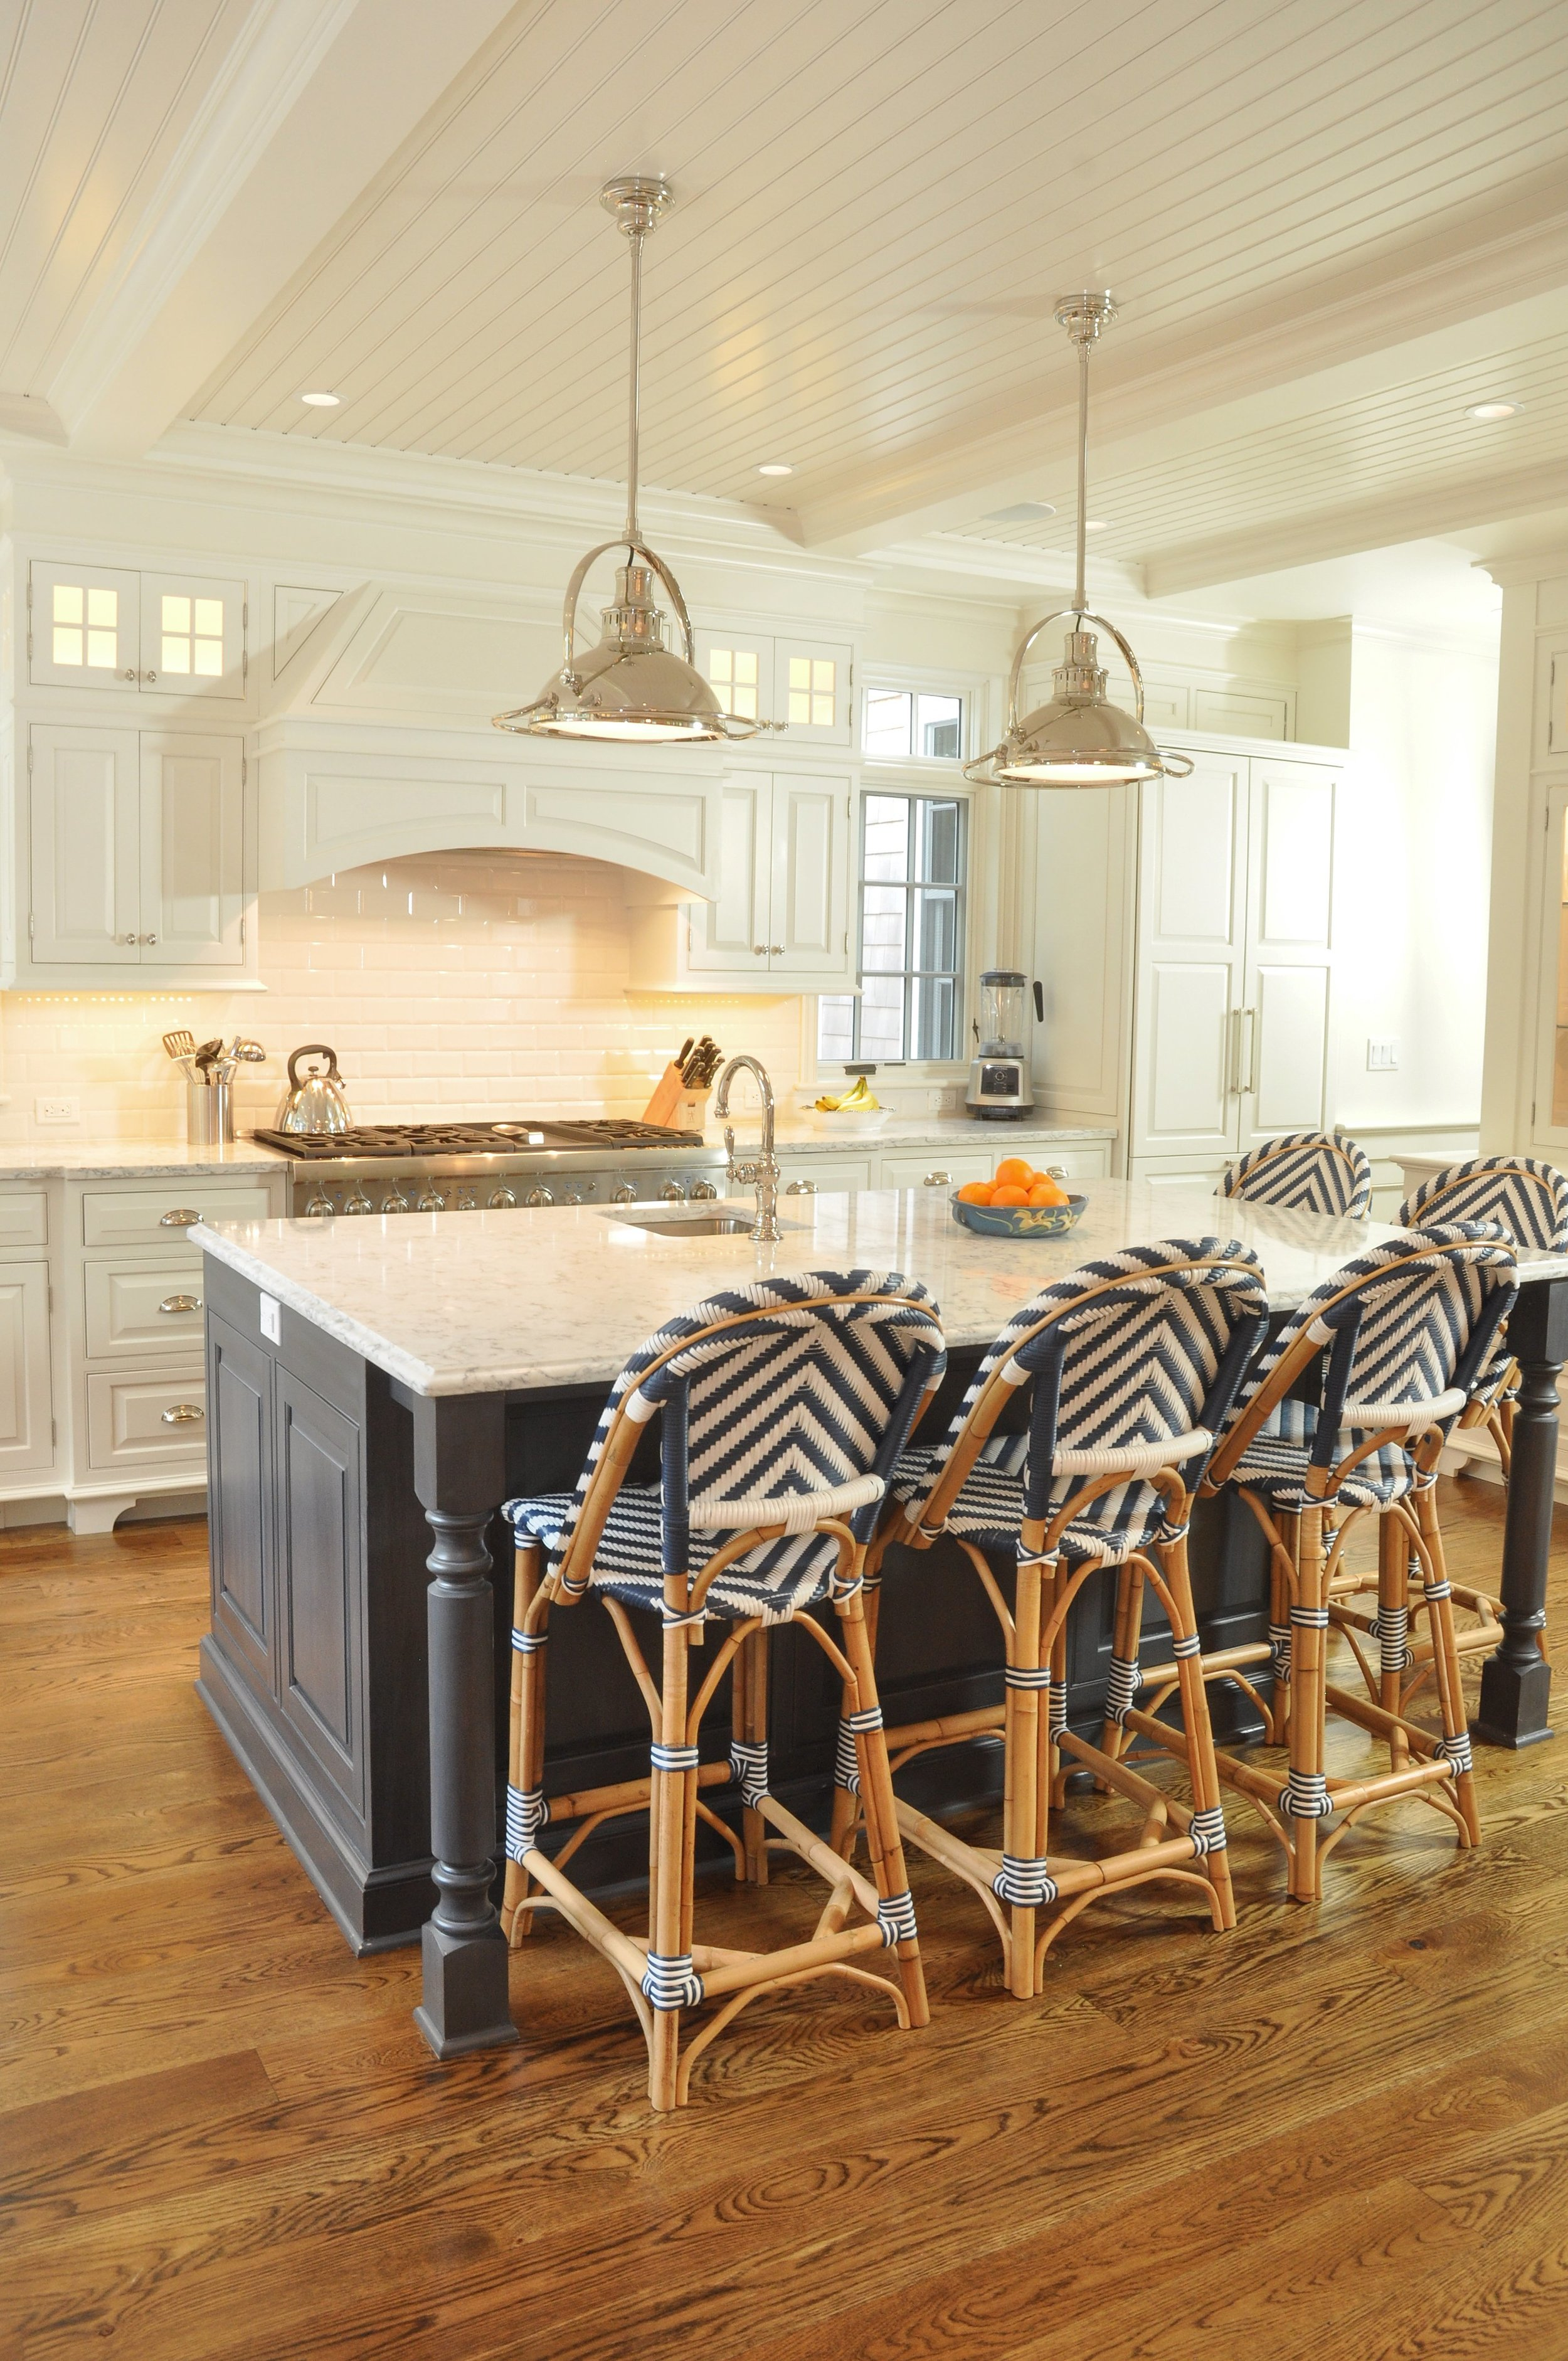 Modern_Kitchen_Blue_Island_Striped_Chairs_Two_Toned_Cabinets.jpg